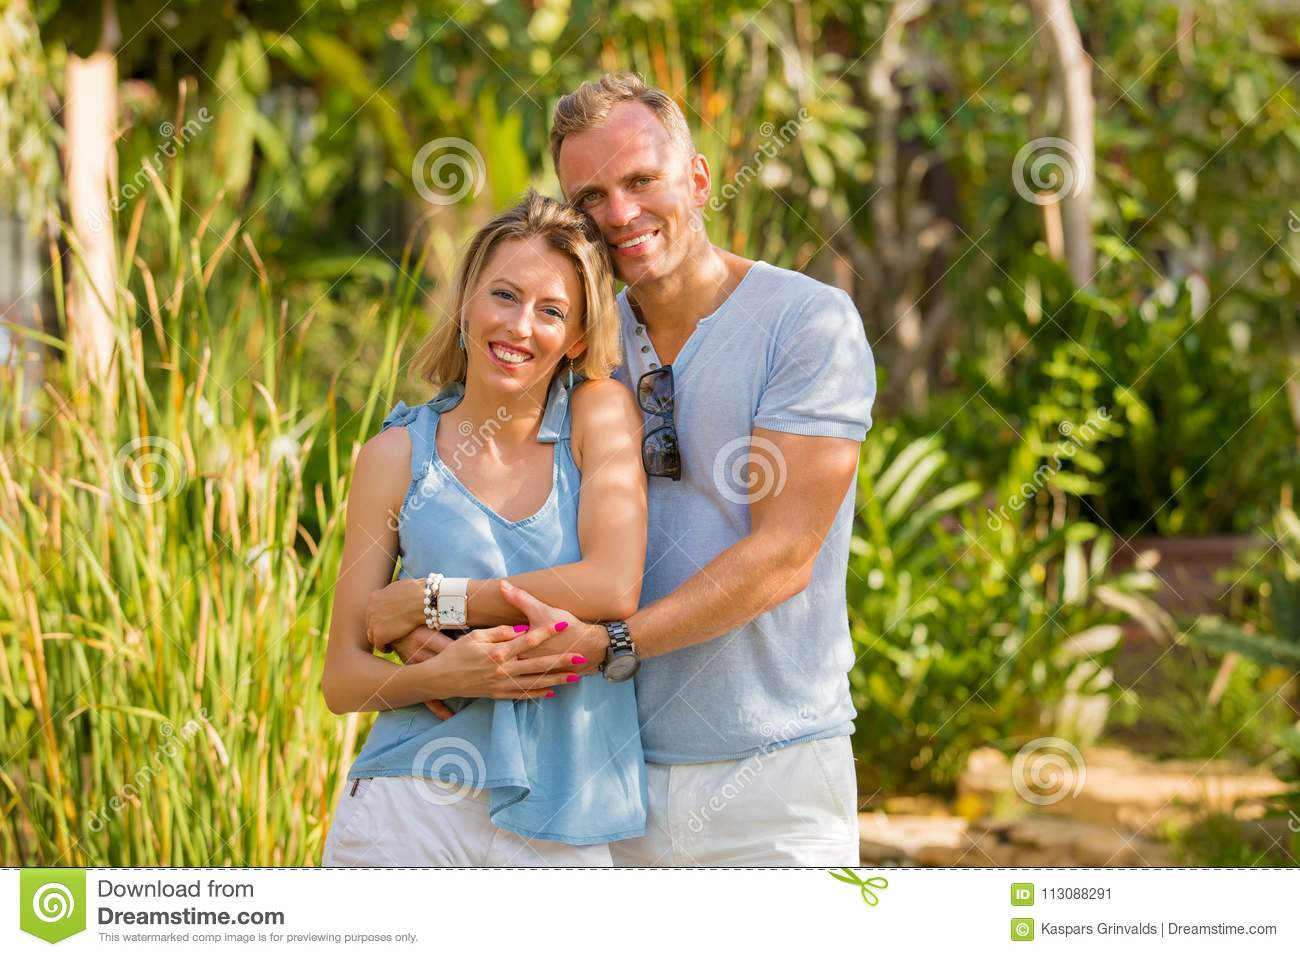 Natural looking happy couple embraced